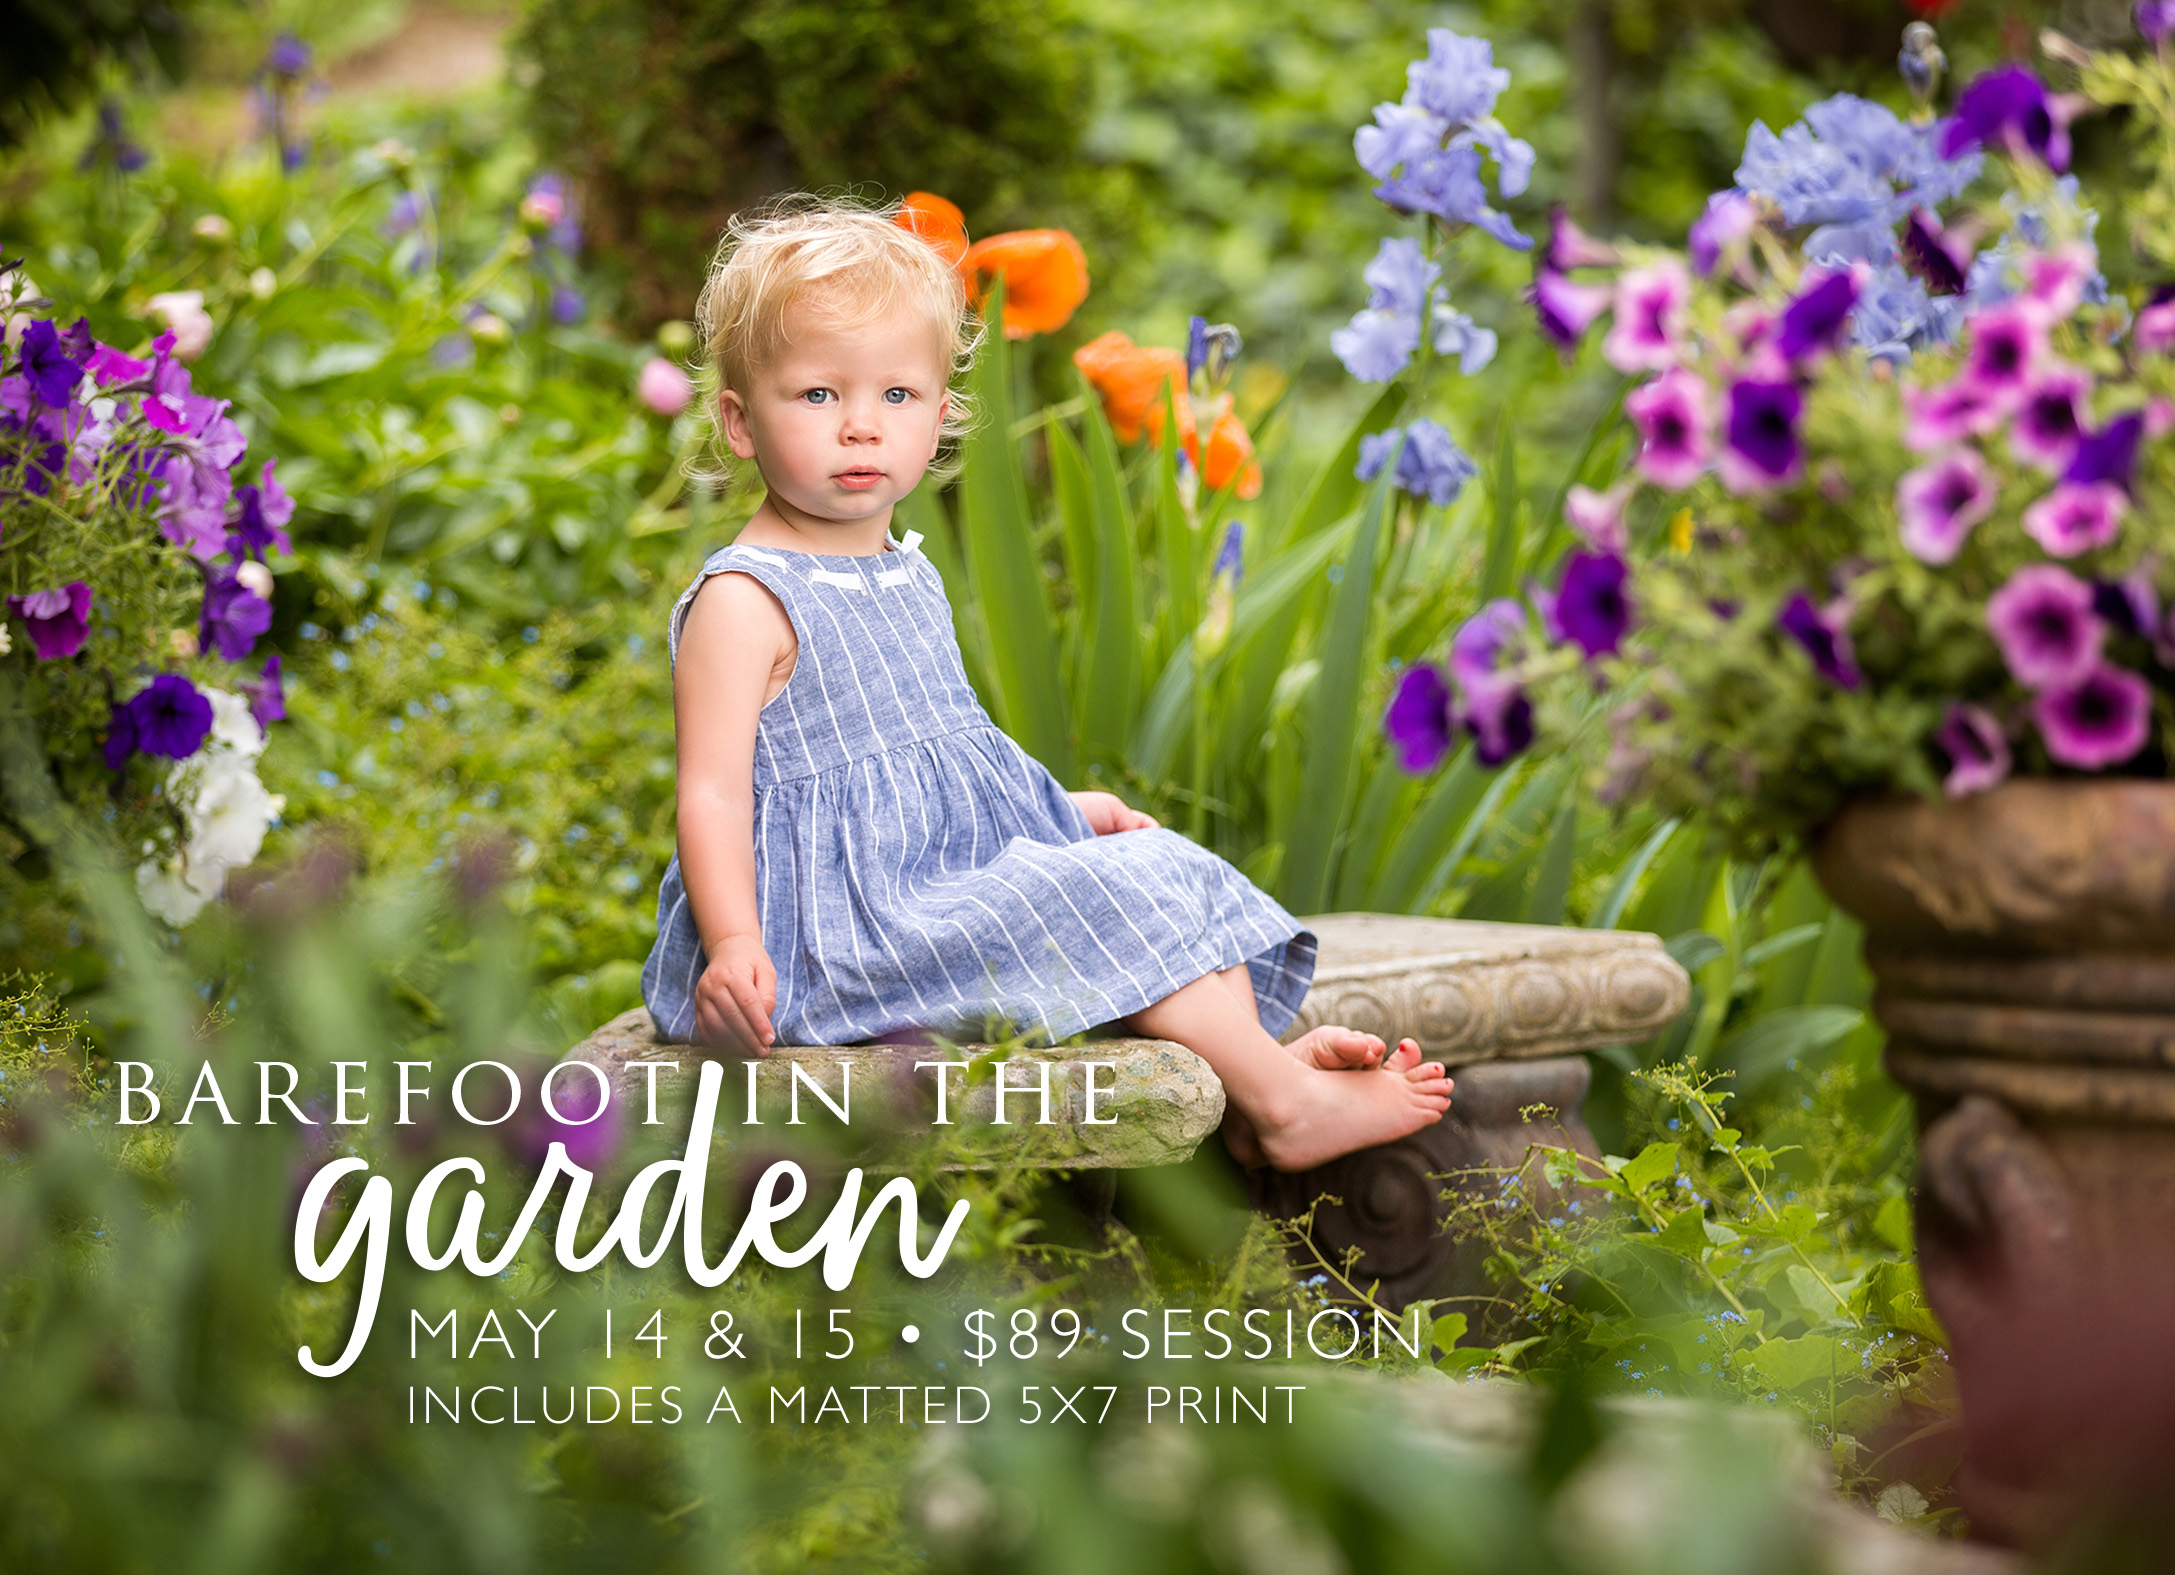 Barefoot In The Gardens May 14 & 15